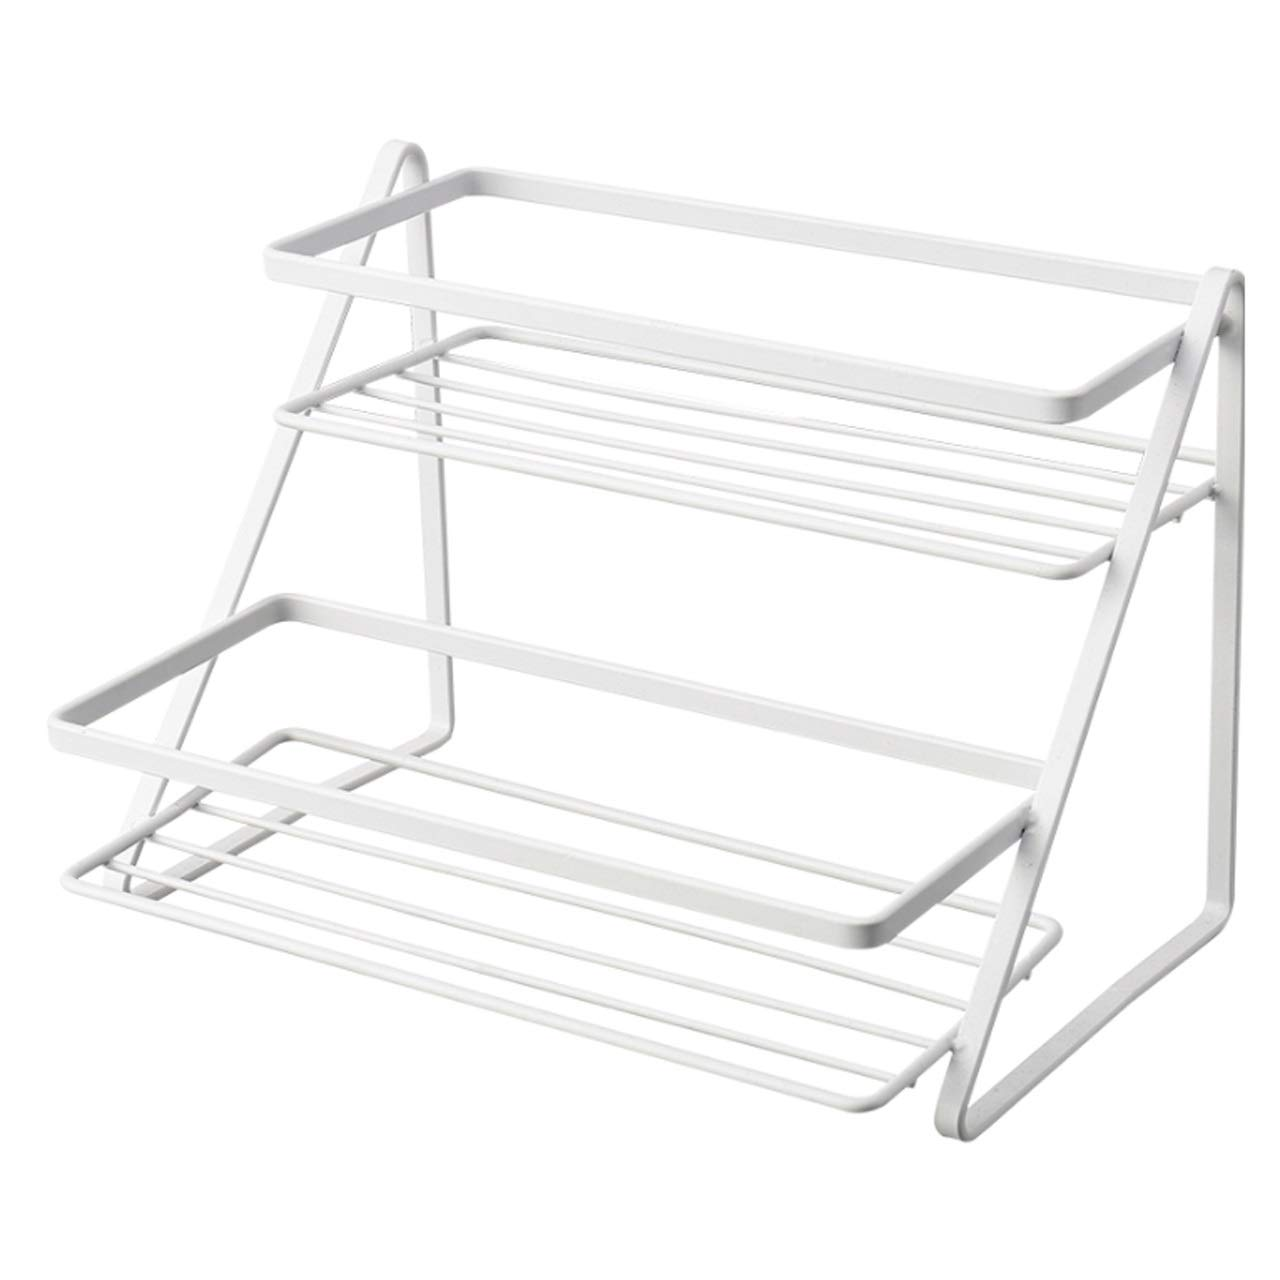 ASIERY Double Wrought Iron Spice Holder Kitchen Storage Rack - White by ASIERY